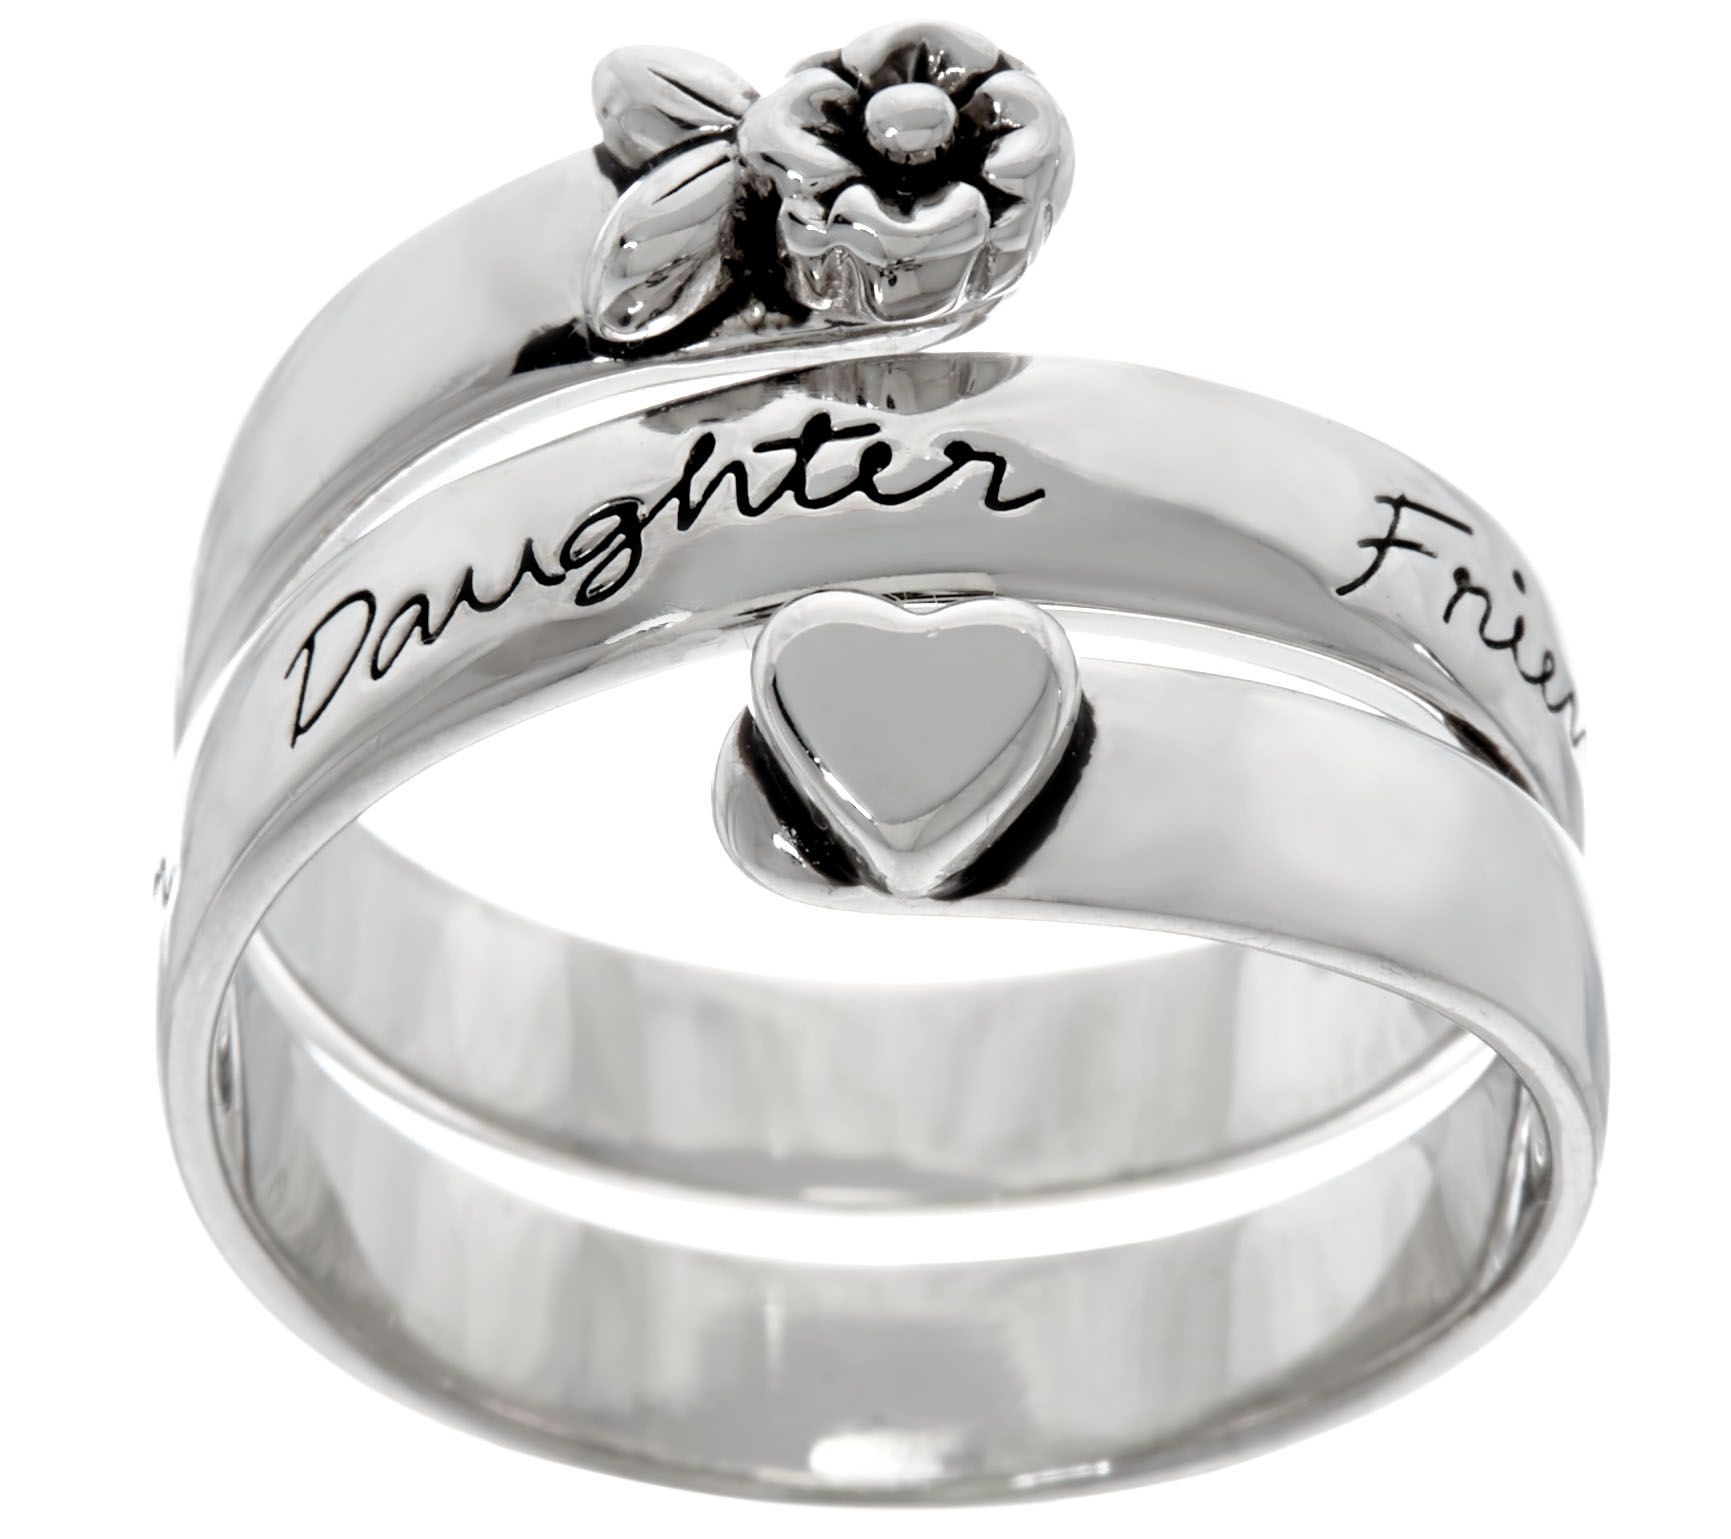 Extraordinary Life Sterling Message Bypass Ring Page 1 — QVC